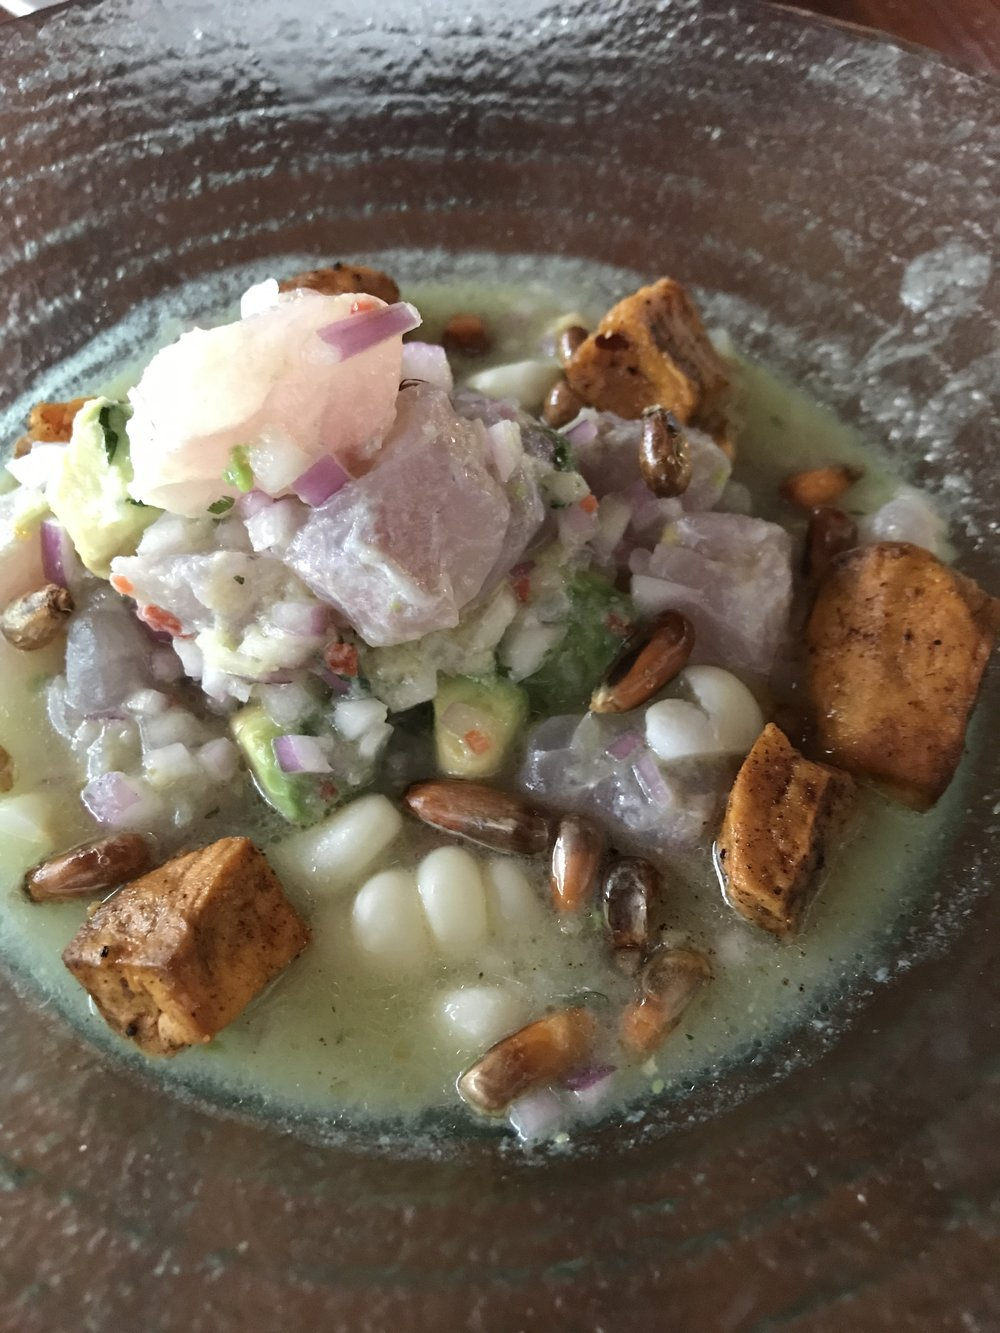 Ceviche, one of my favorite Peruvian dishes